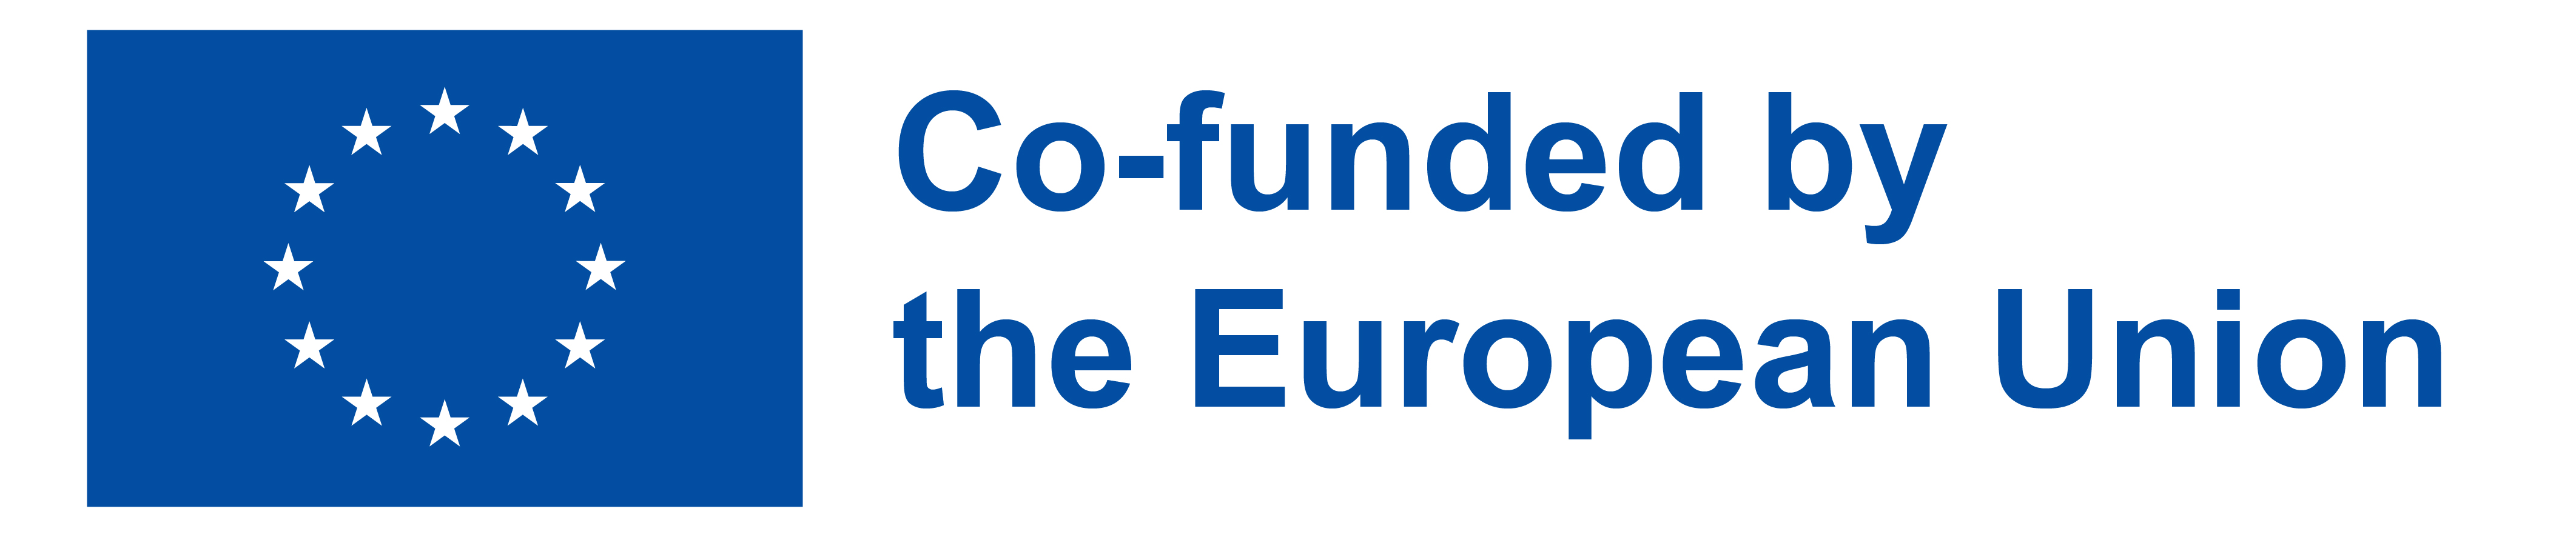 Co funded by the Eu